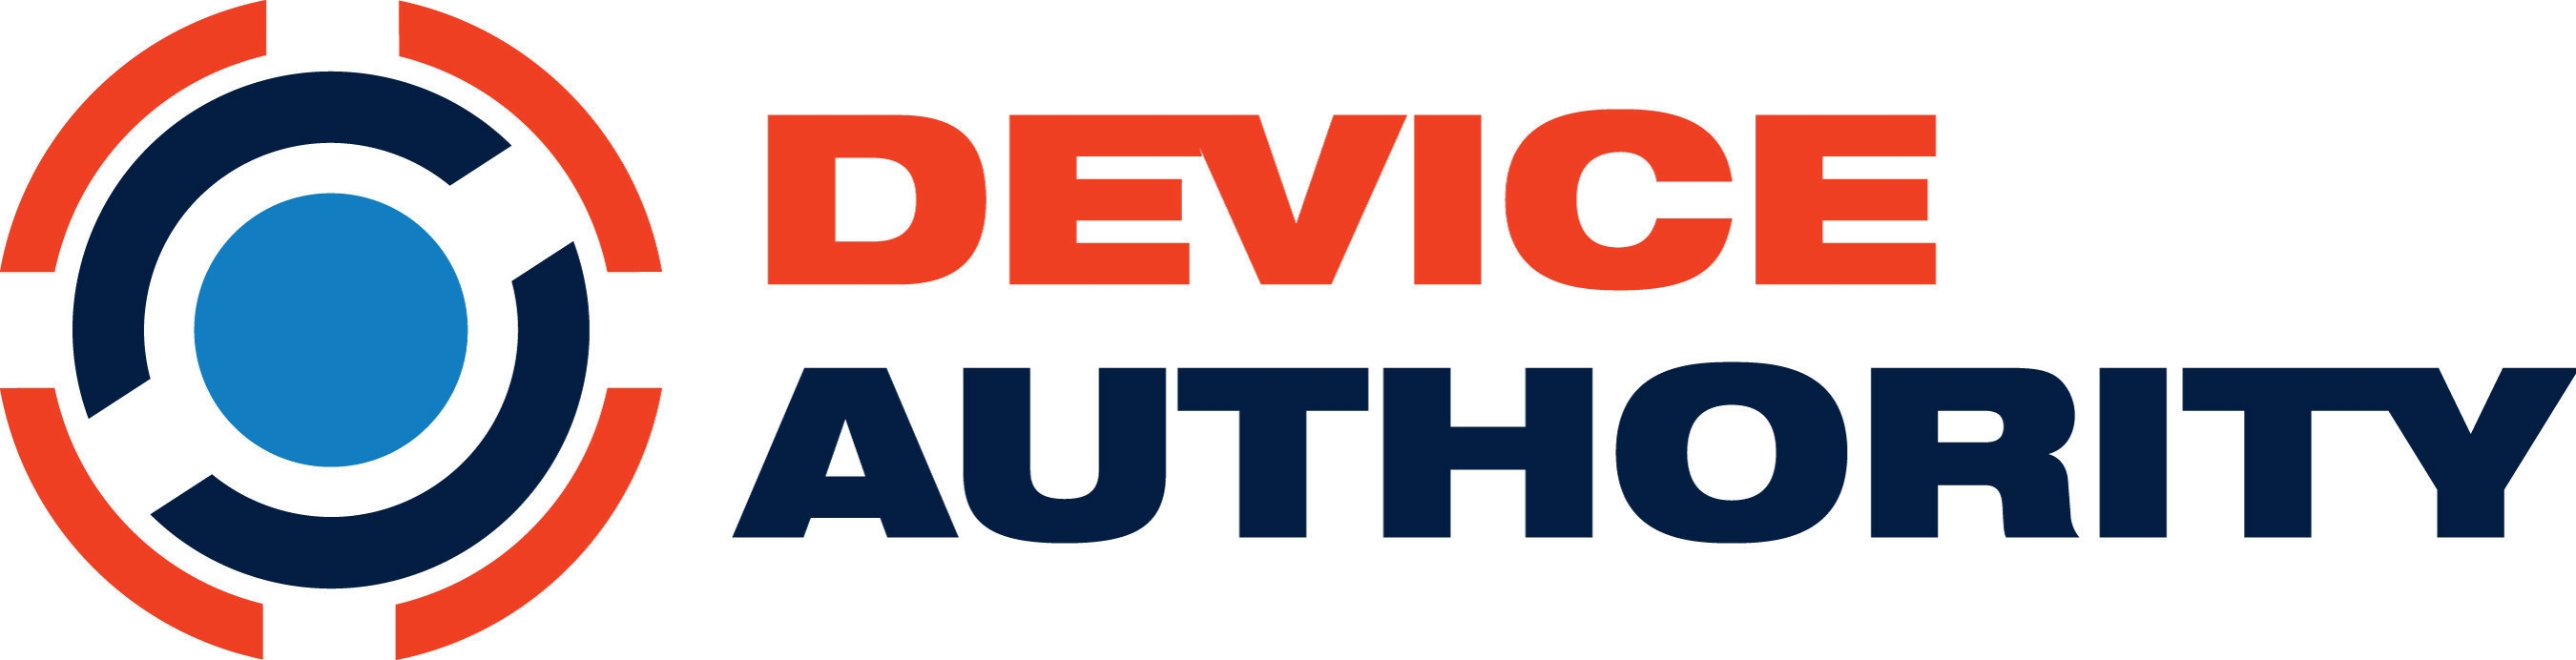 Device Authority Named a Gartner Cool Vendor in Identity and Access Management 2015 Report